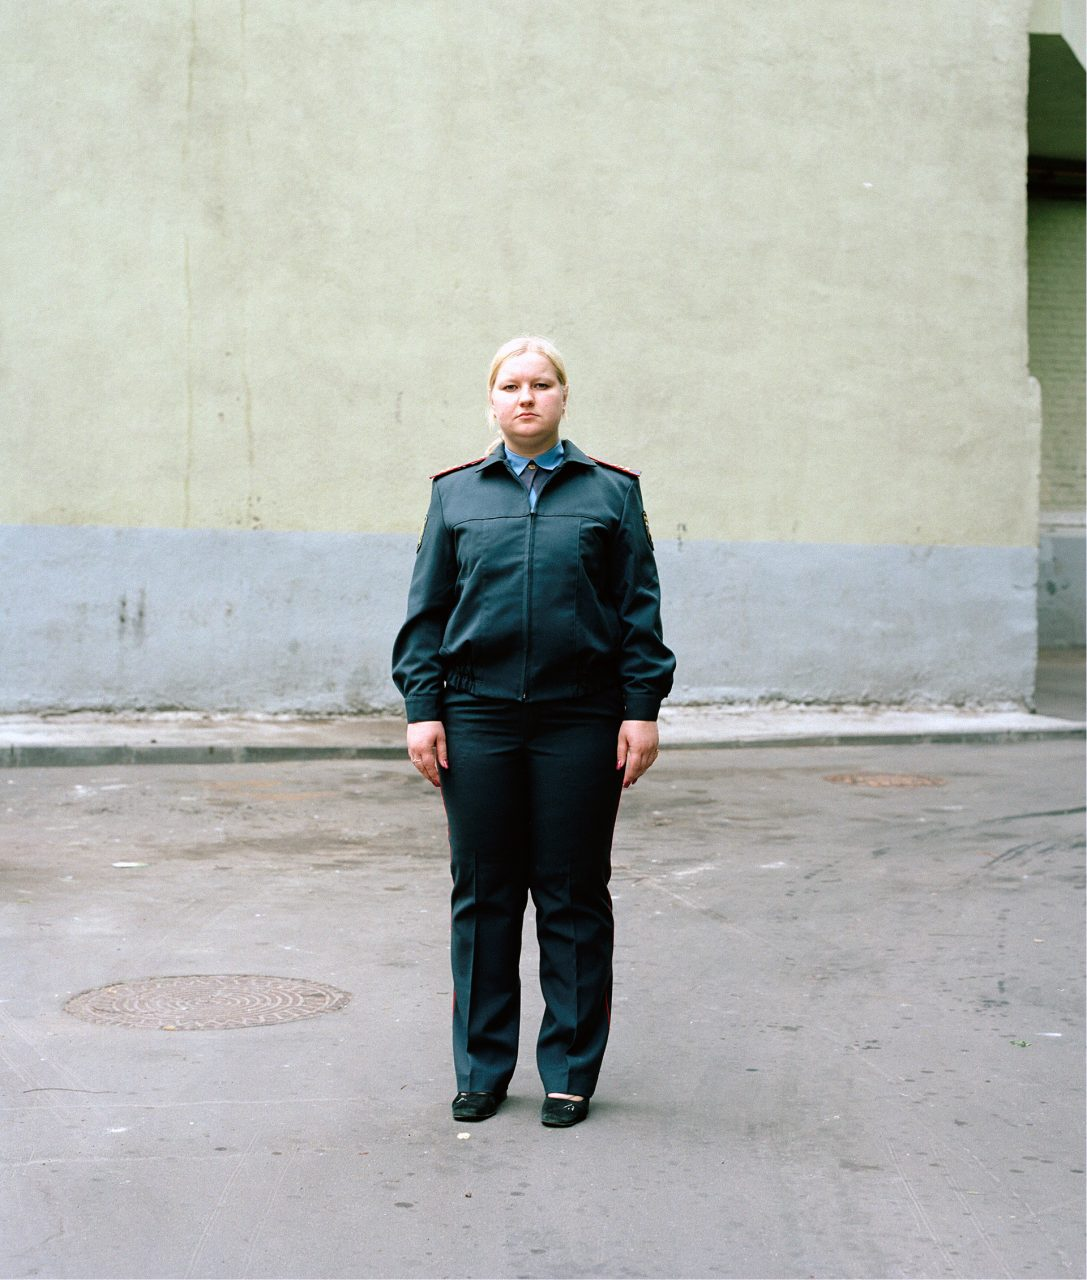 9,5% plus, Sergeant A., c-print on aluminium, 120 x 96 cm, 2005